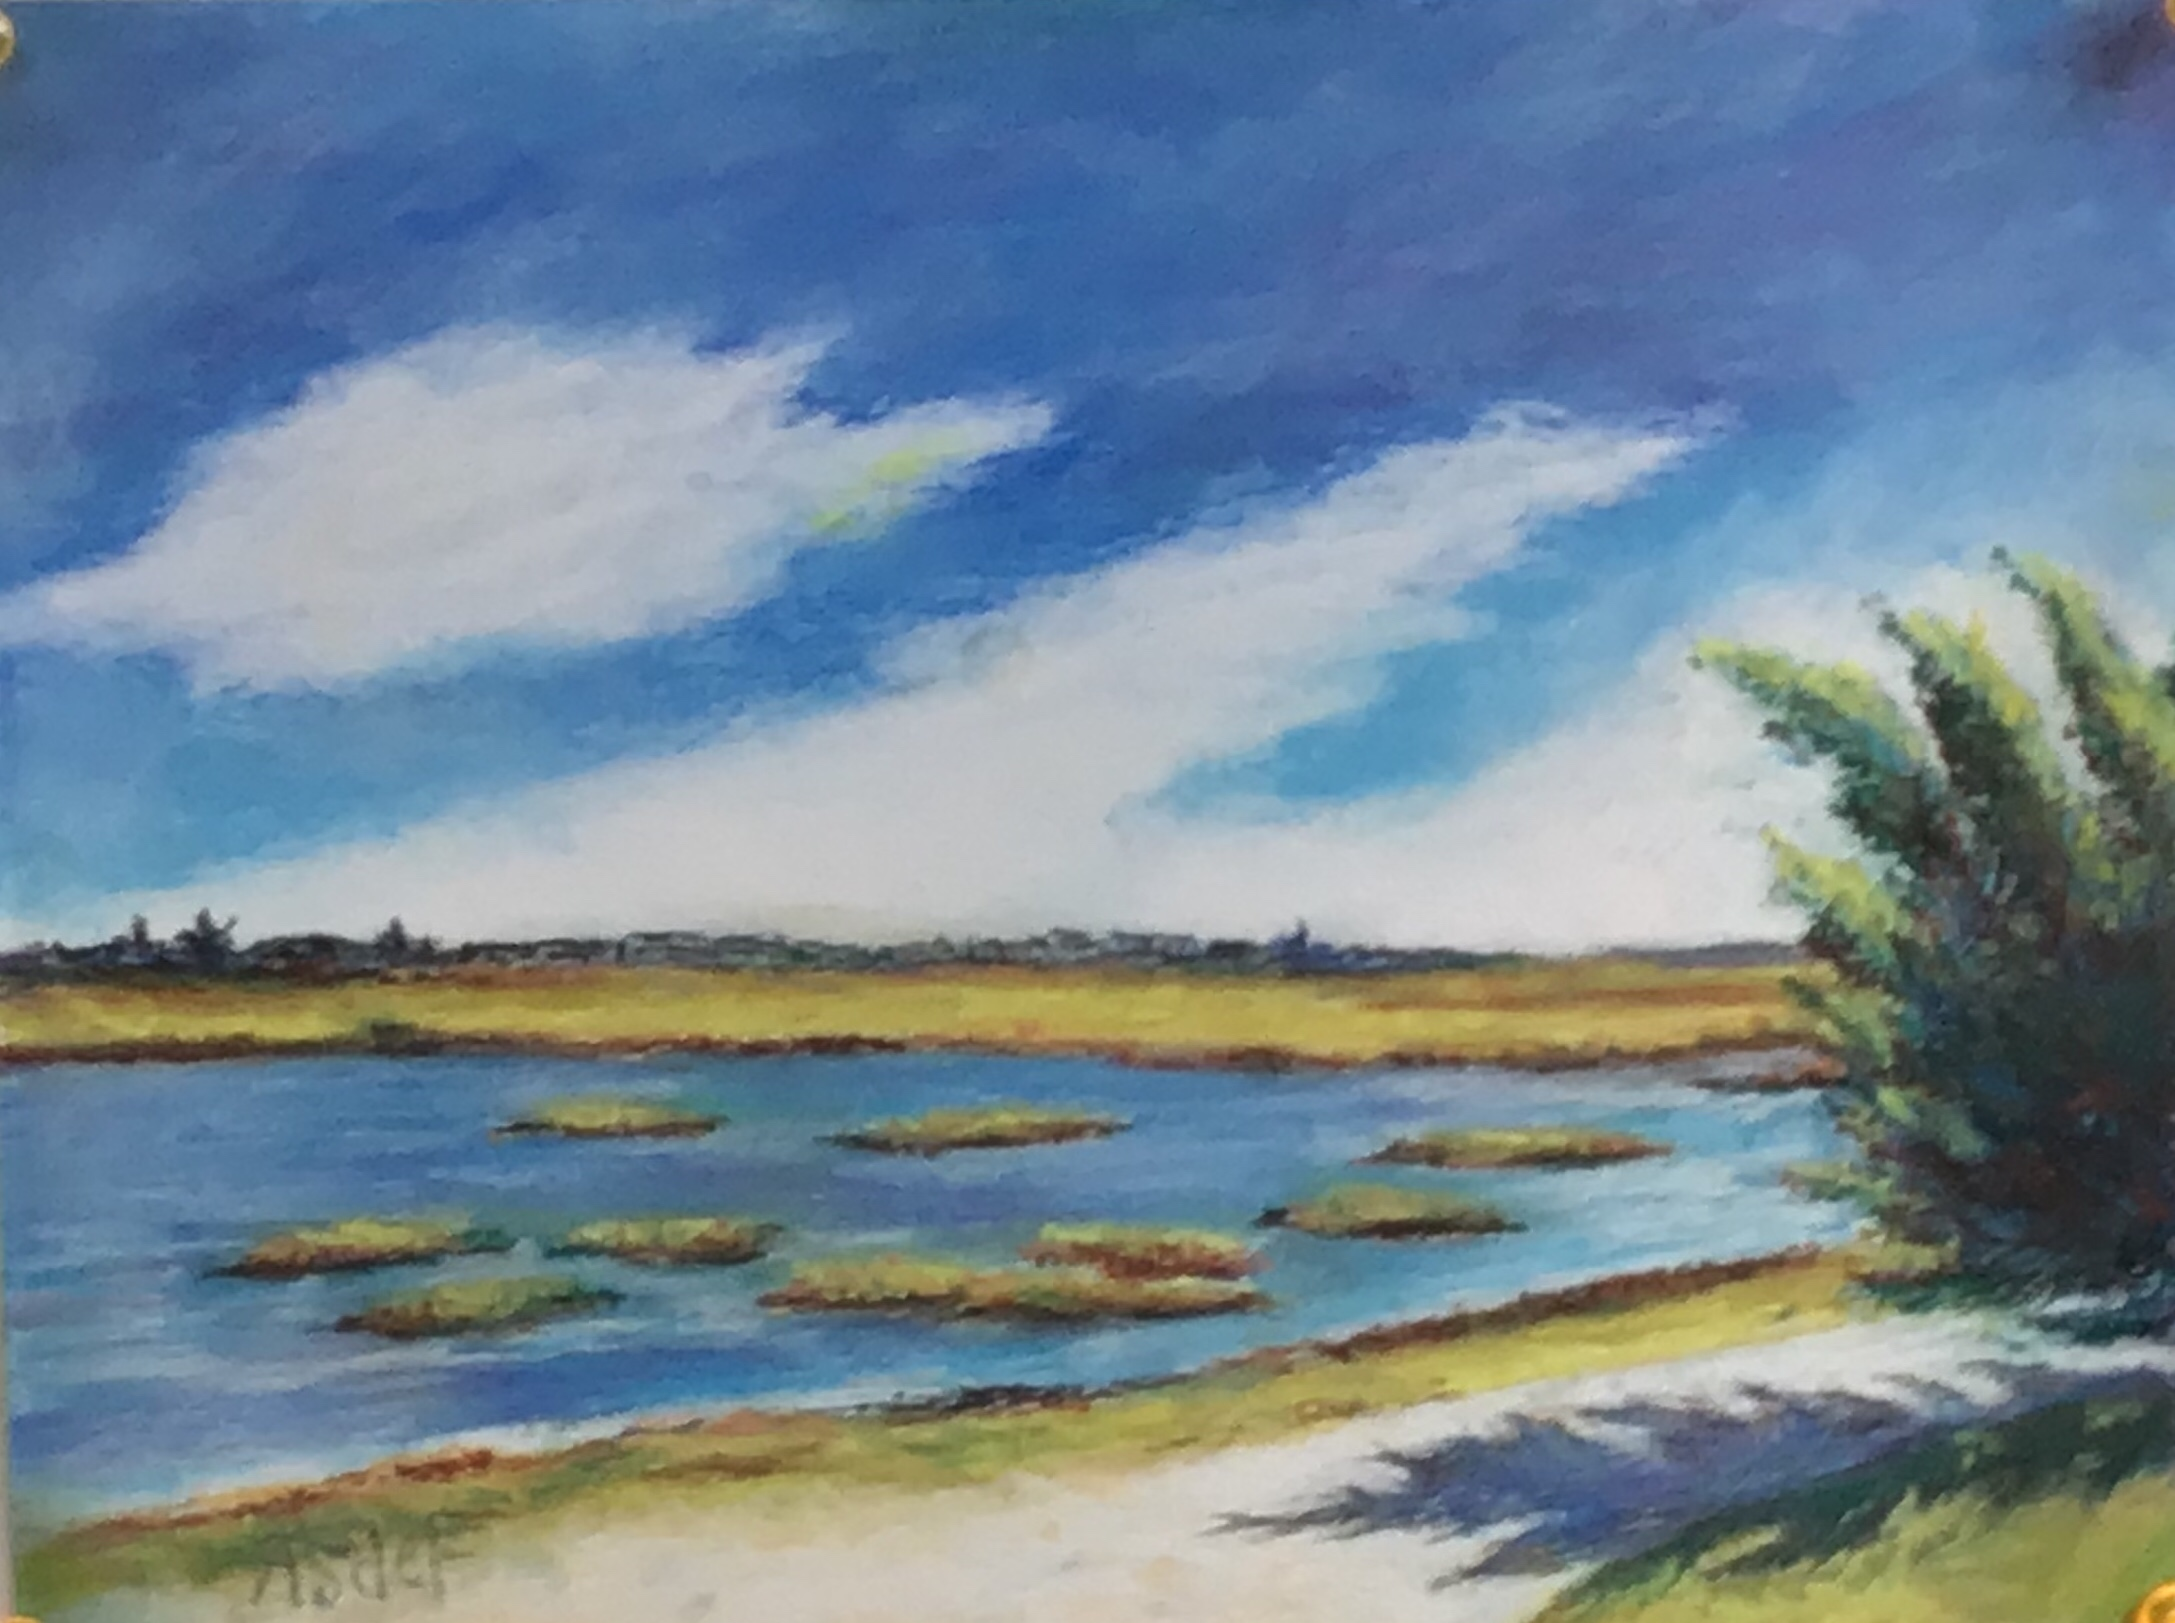 Salt marshes, New Jersey